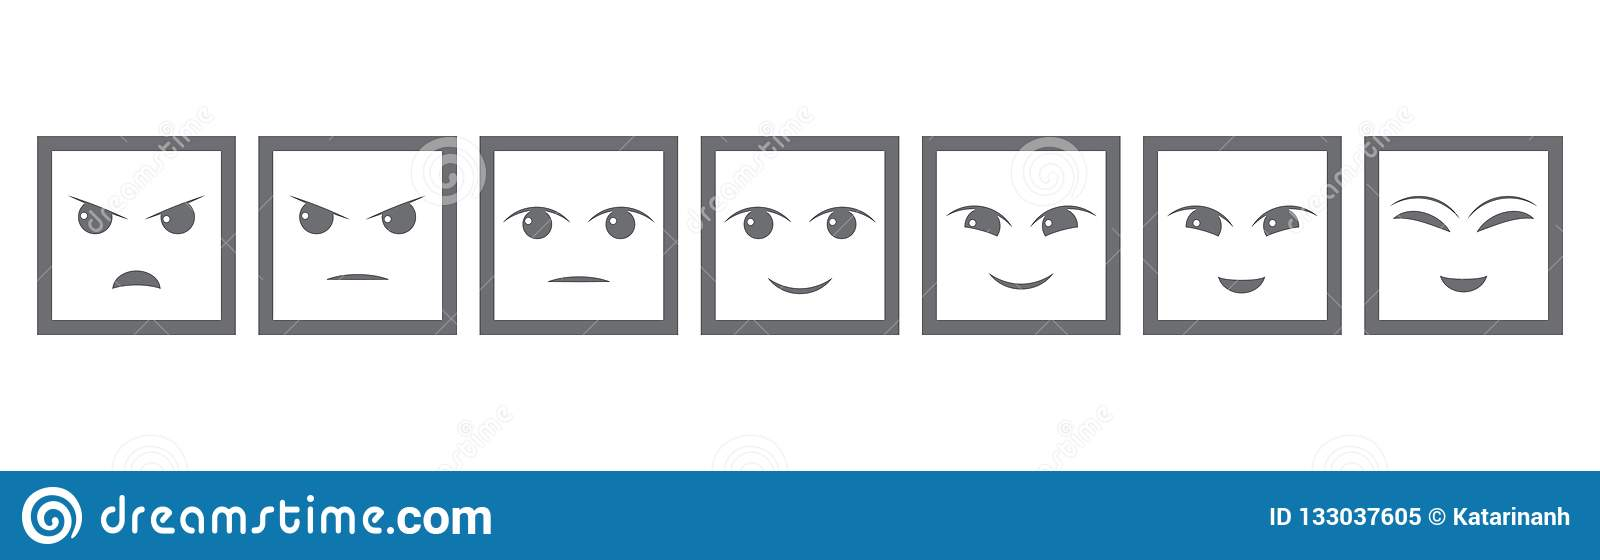 Seven Gray Faces Feedback/Mood. Iconic illustration of satisfaction level. Range to assess the emotions of your content. User expe